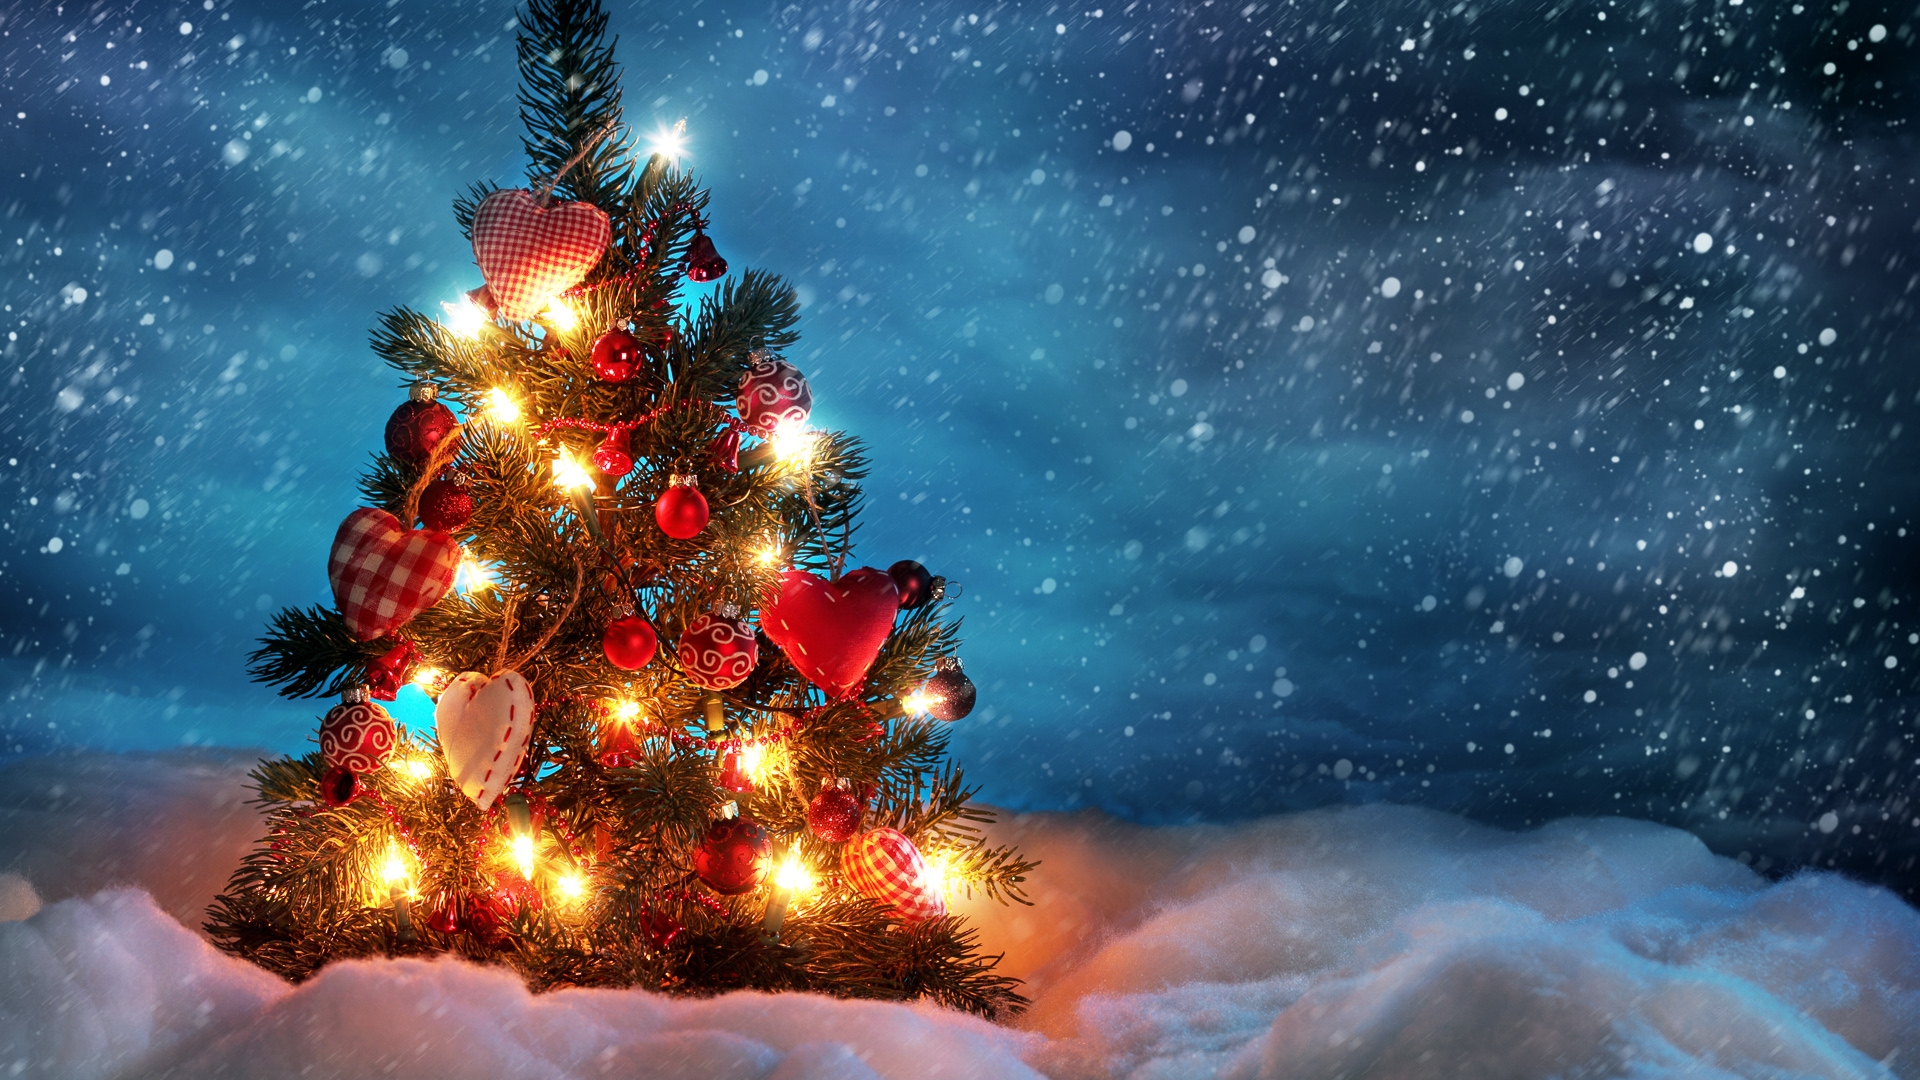 Get The Latest Christmas Tree Snow Winter News Pictures And Videos Learn All About From Wallpapers4uorg Your Wallpaper